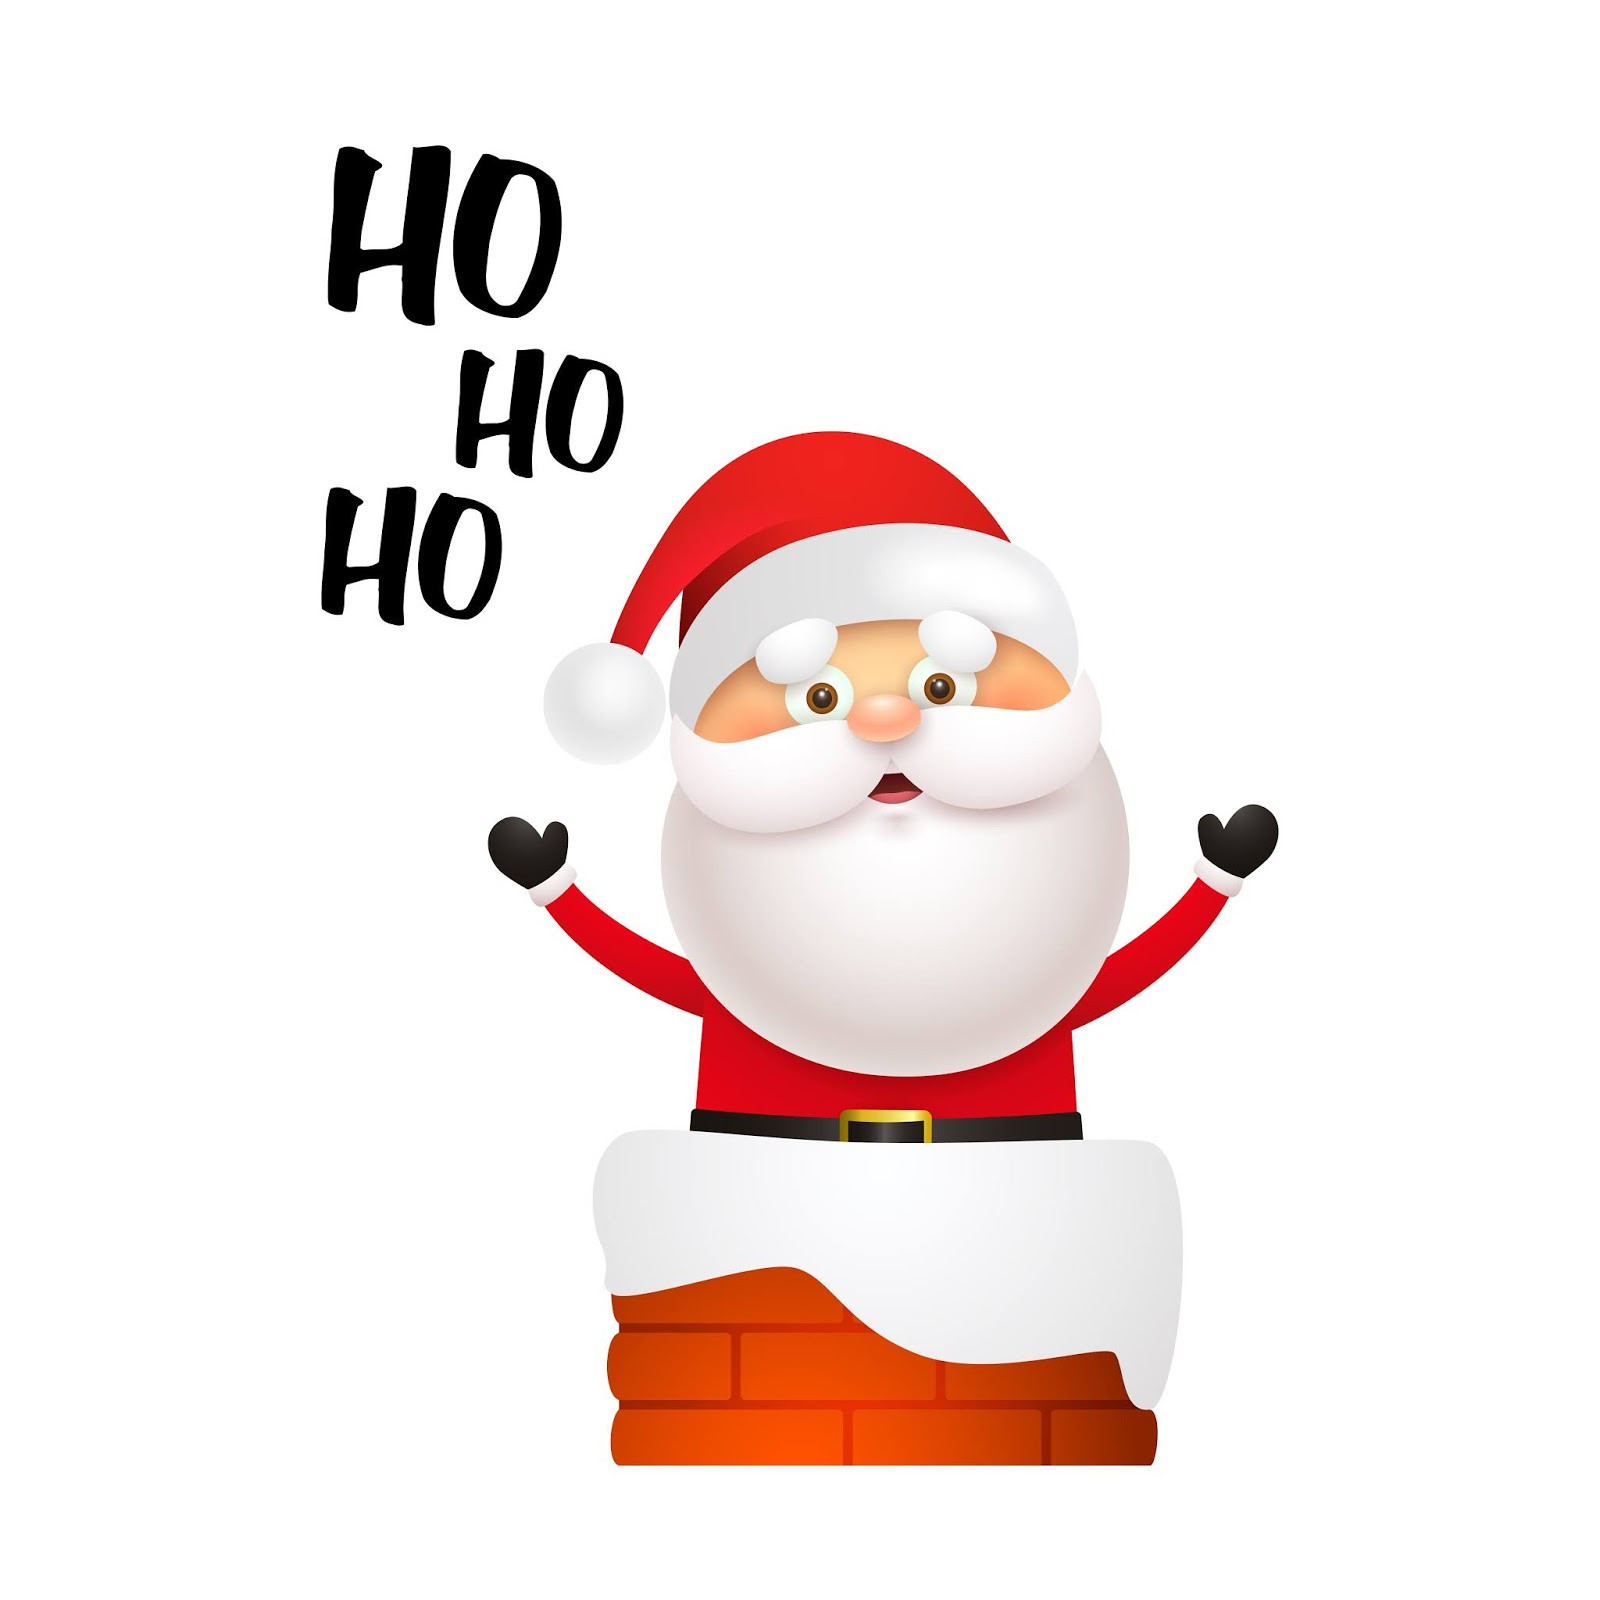 Laughing Santa Claus Getting Into Chimney Free Download Vector CDR, AI, EPS and PNG Formats